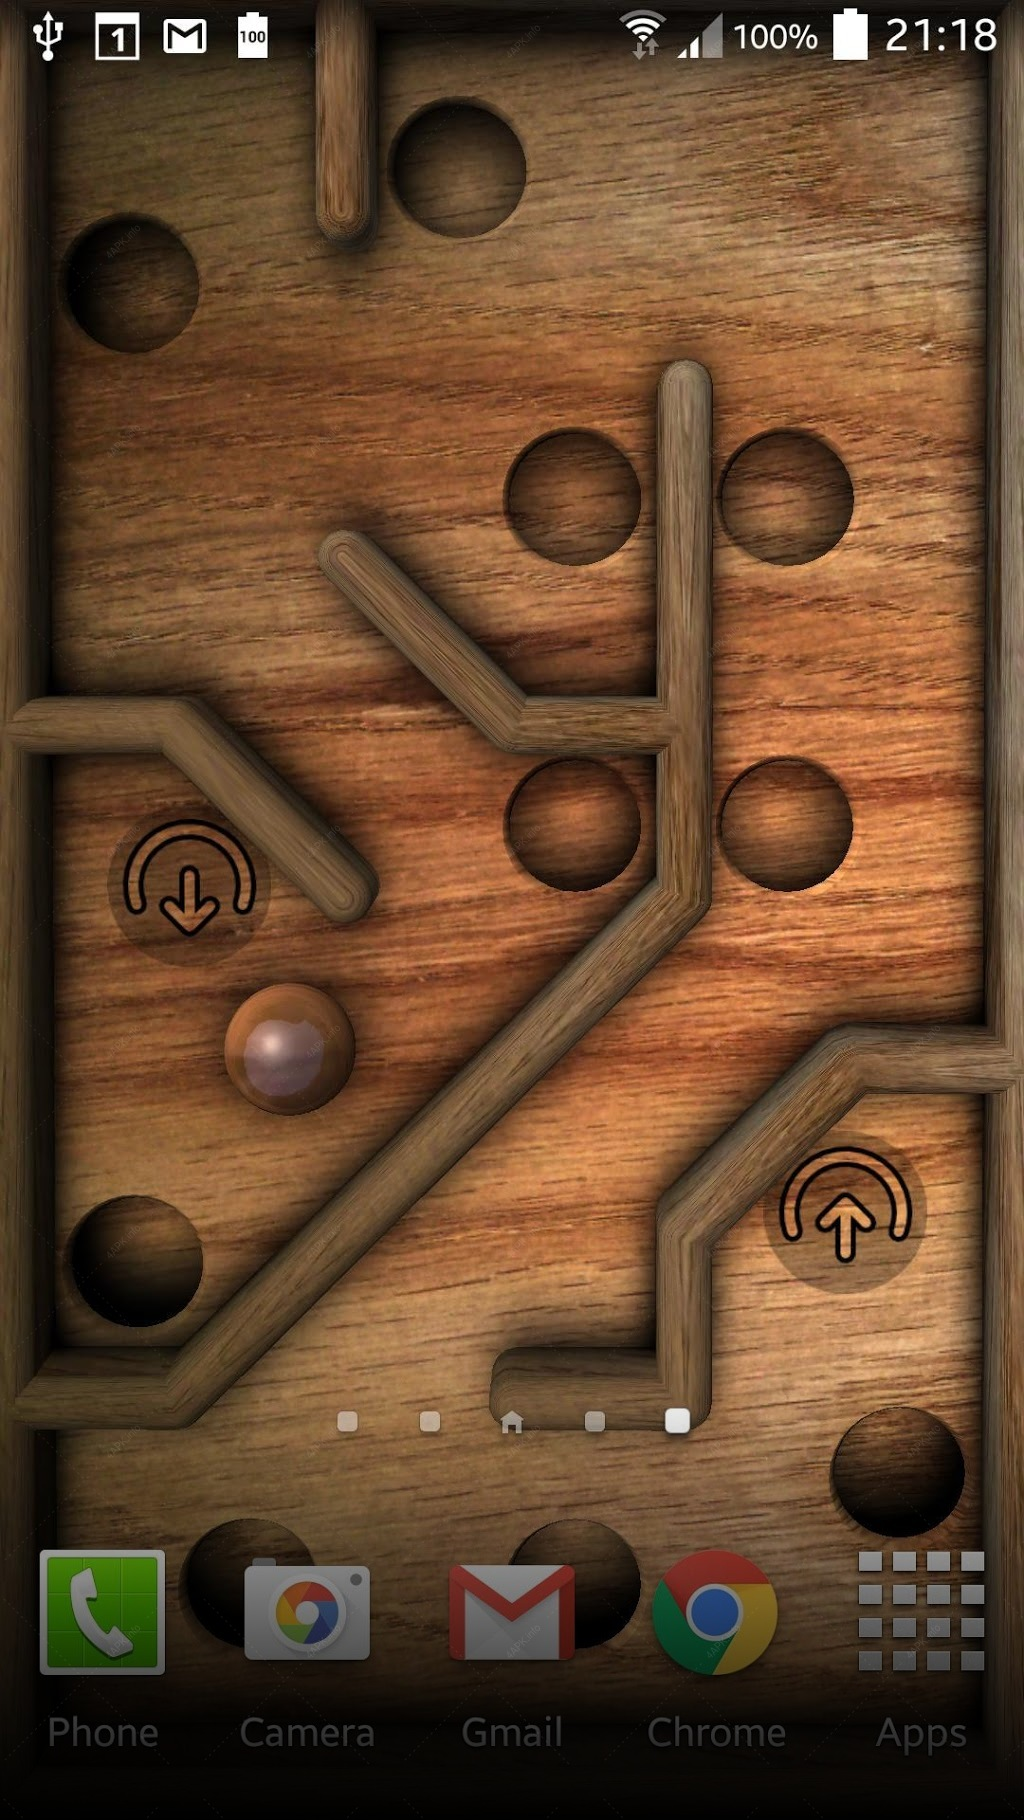 Marble Maze Wallpaper Game screenshot